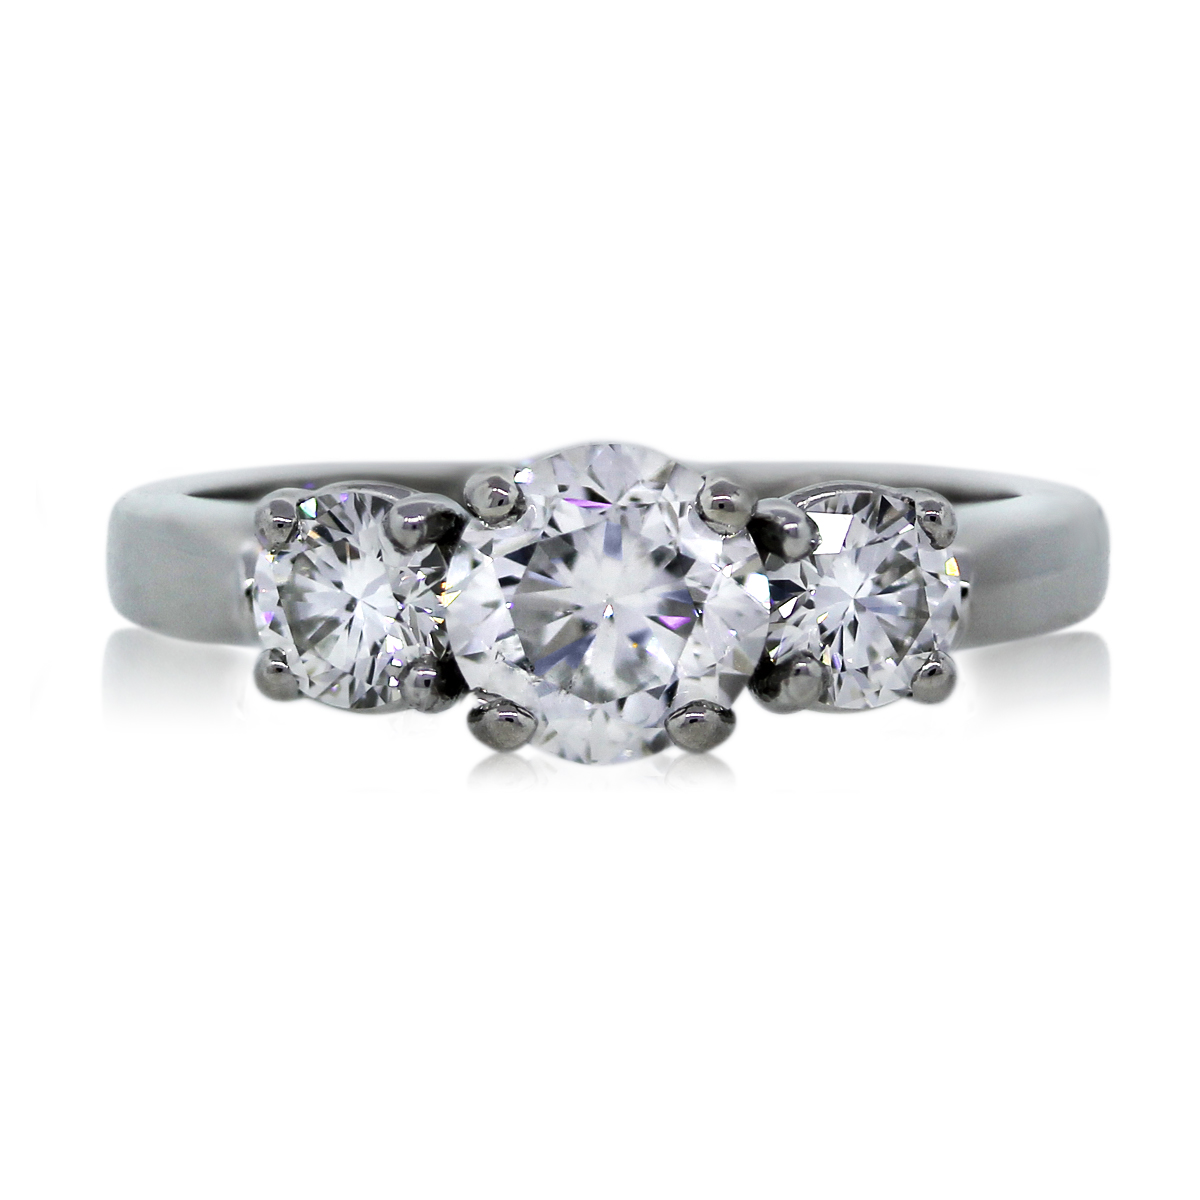 You Are Viewing This Stunning Three Stone Round Brilliant Diamond  Engagement Ring!